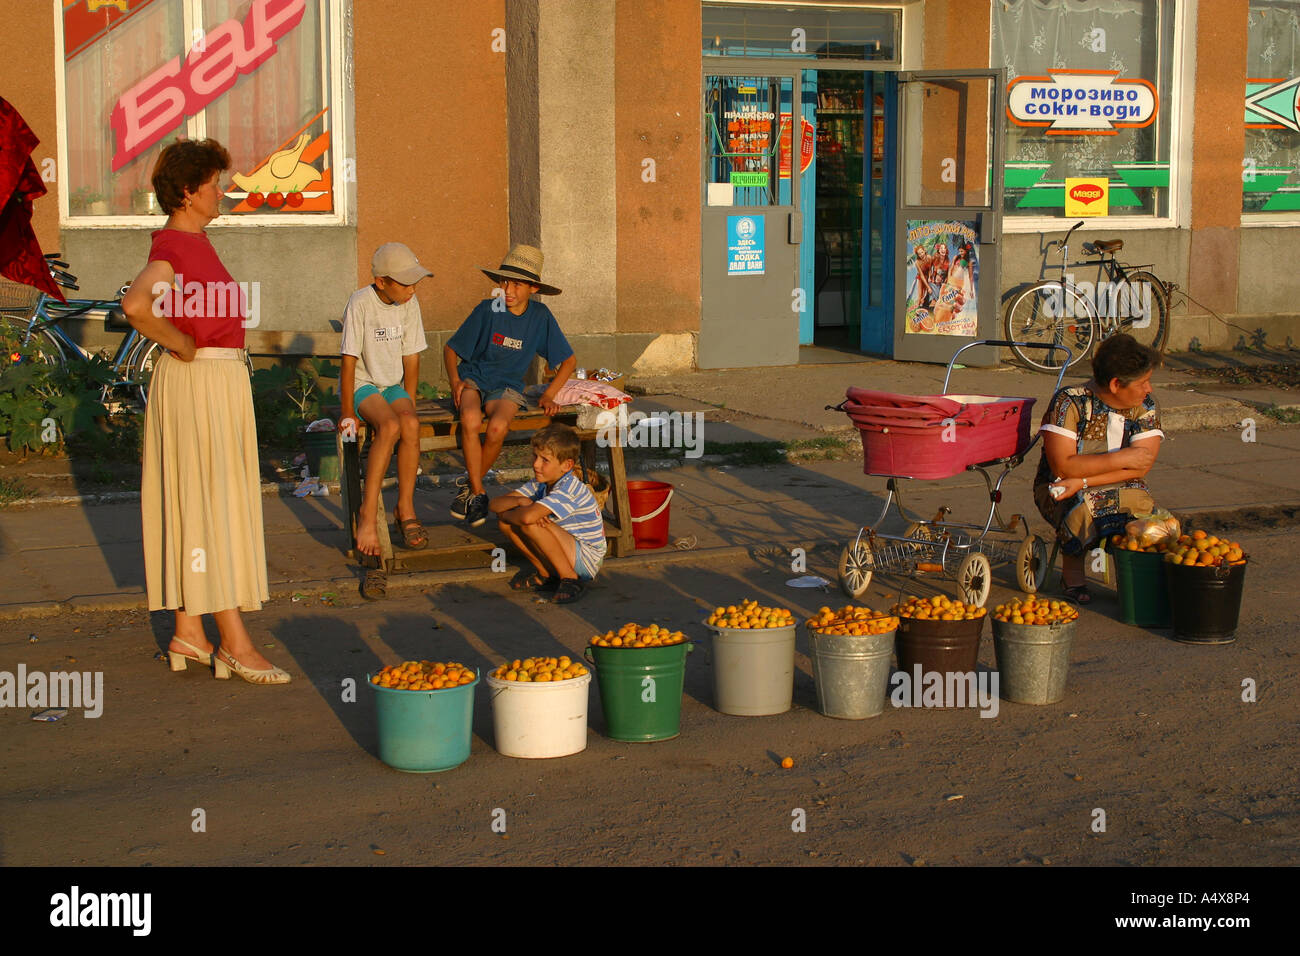 Women sells fruits at a street market in Zhashkiv, a small town in the southern Ukraine. - Stock Image